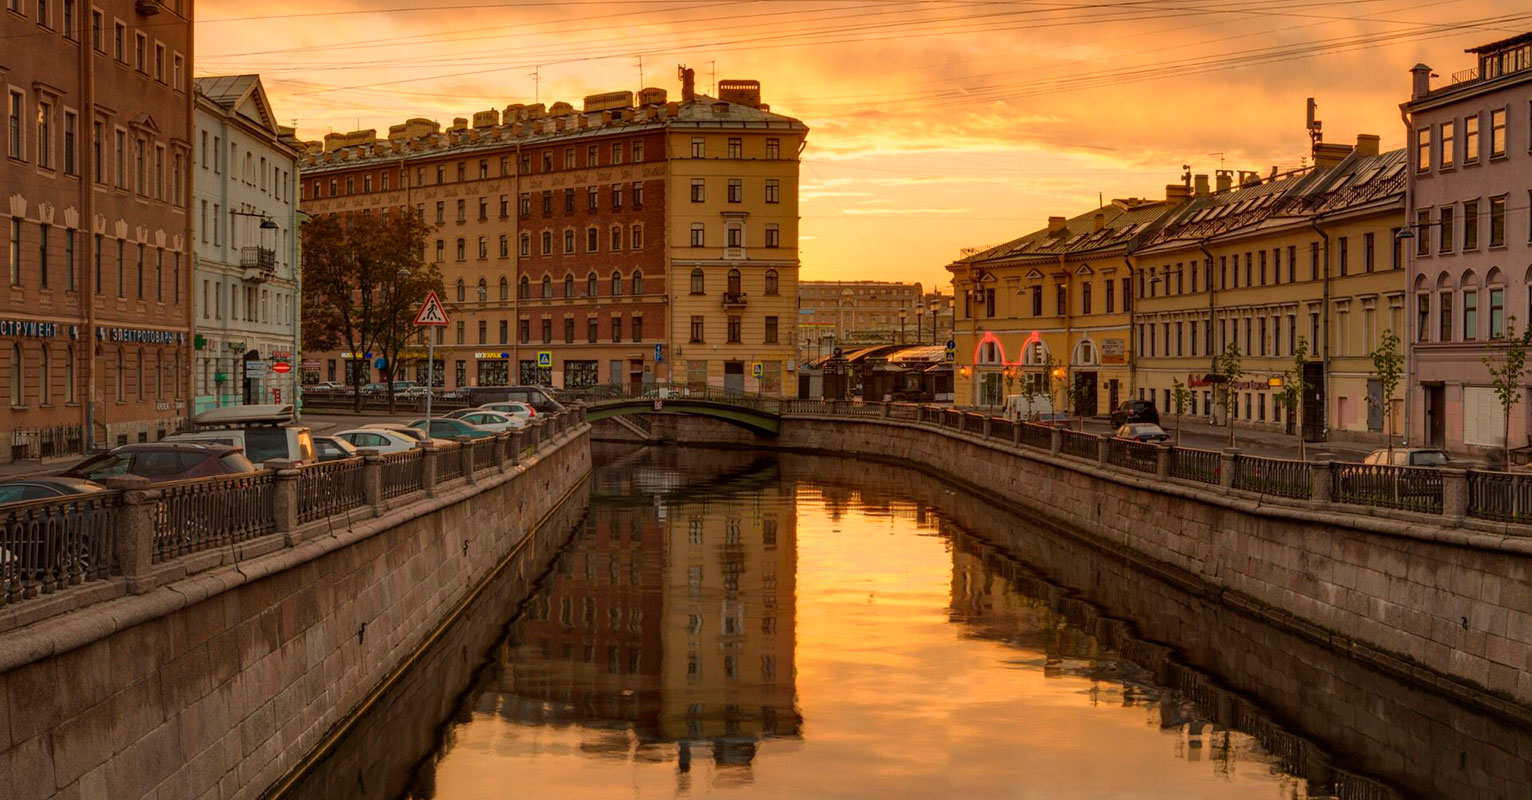 The return to Antique Saint Petersburg